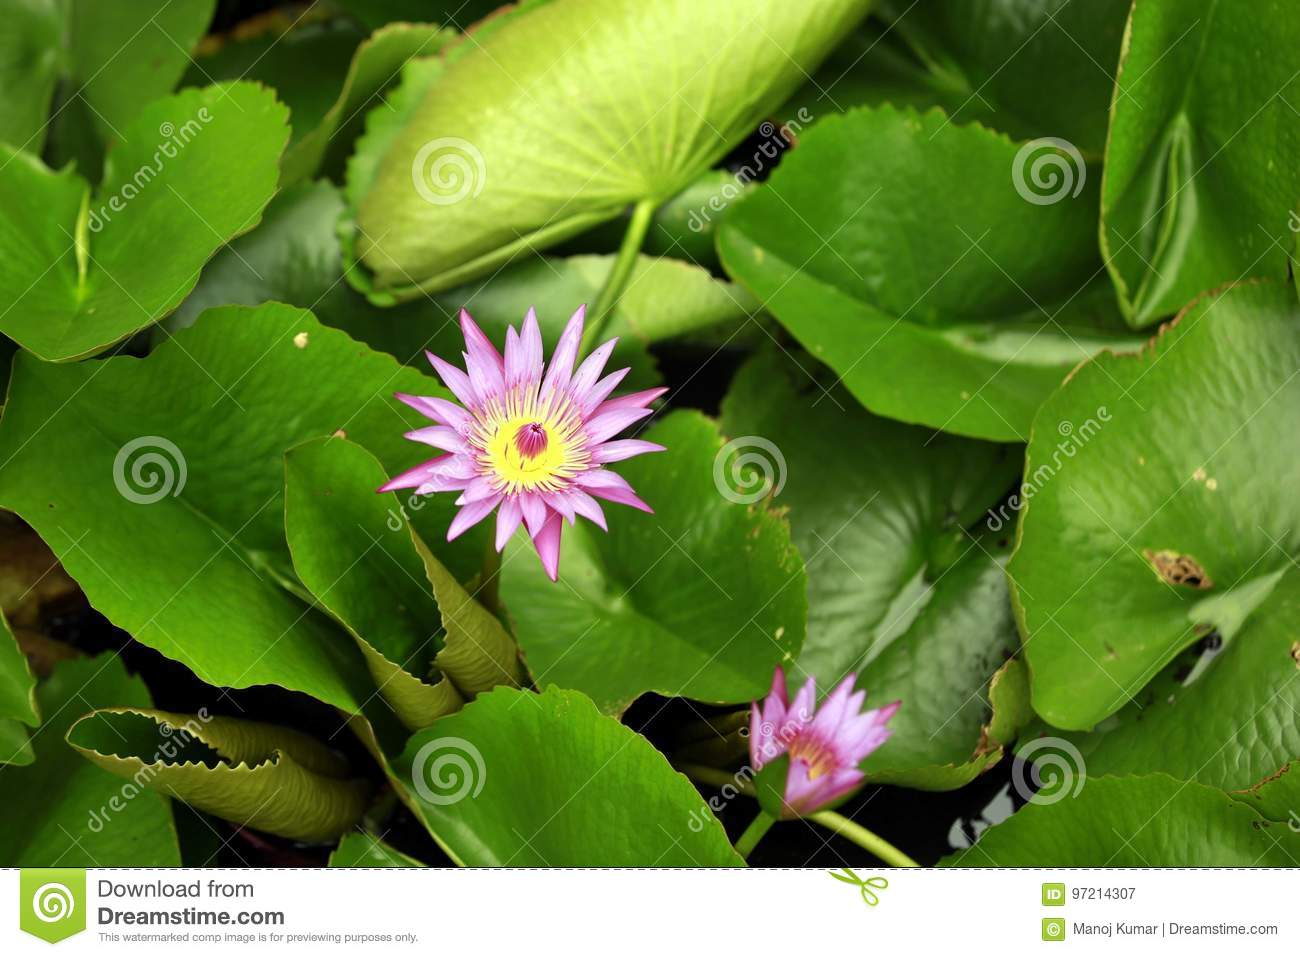 Lotus pink stock image  Image of mostly, leaves, lily - 97214307